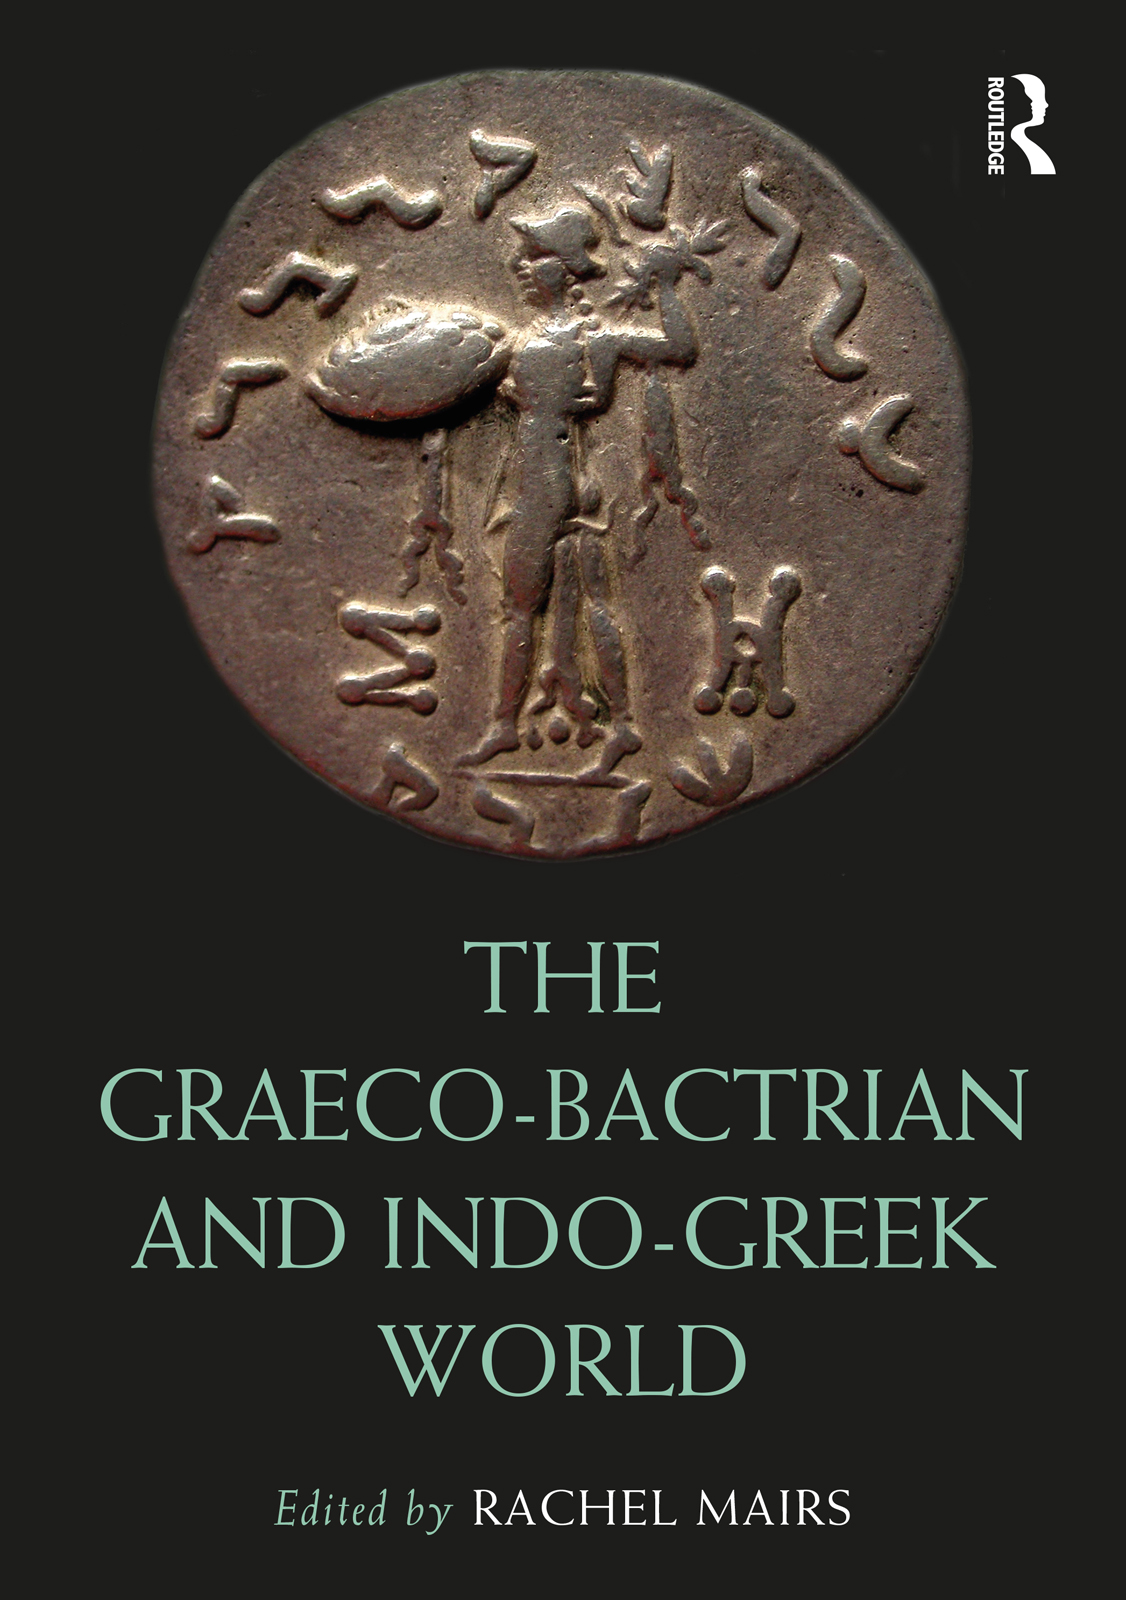 The Graeco-Bactrian and Indo-Greek World